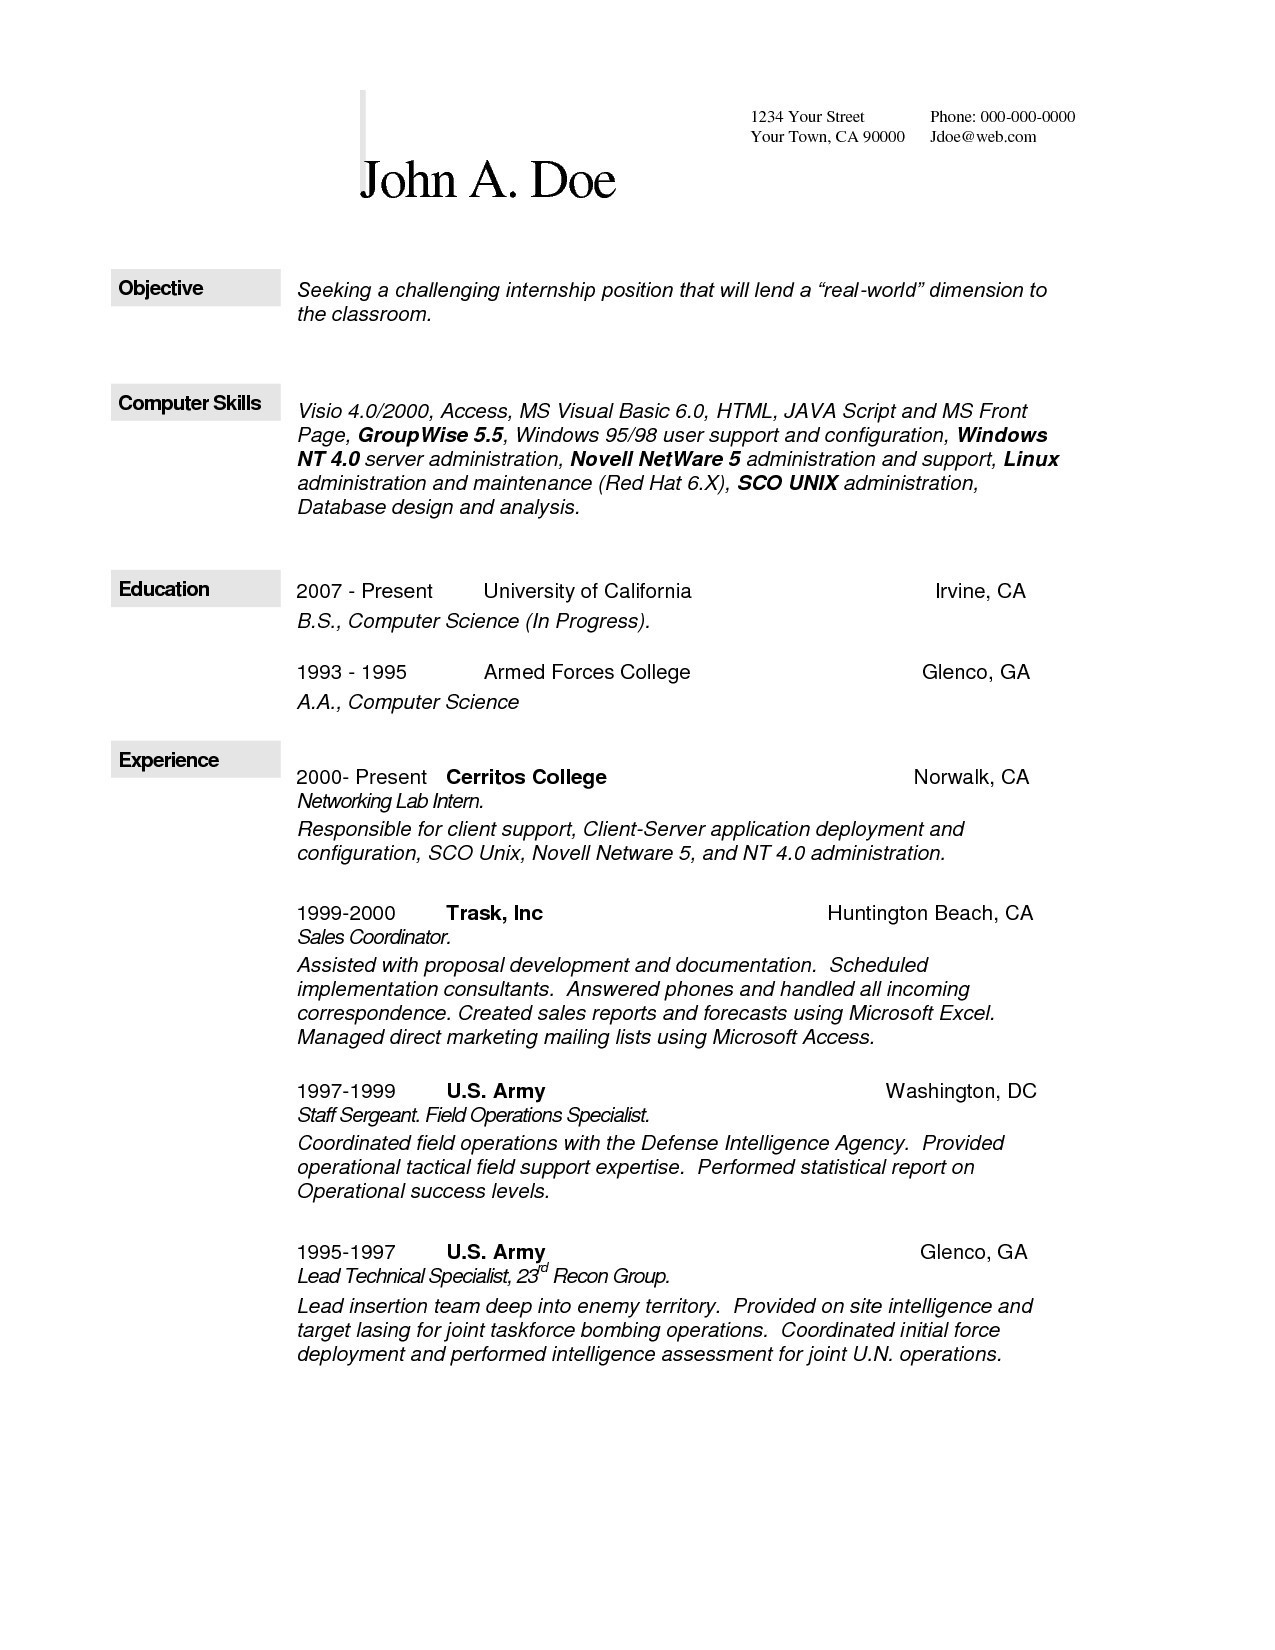 Resume Template Science - Awesome Omputer Science Resume Example